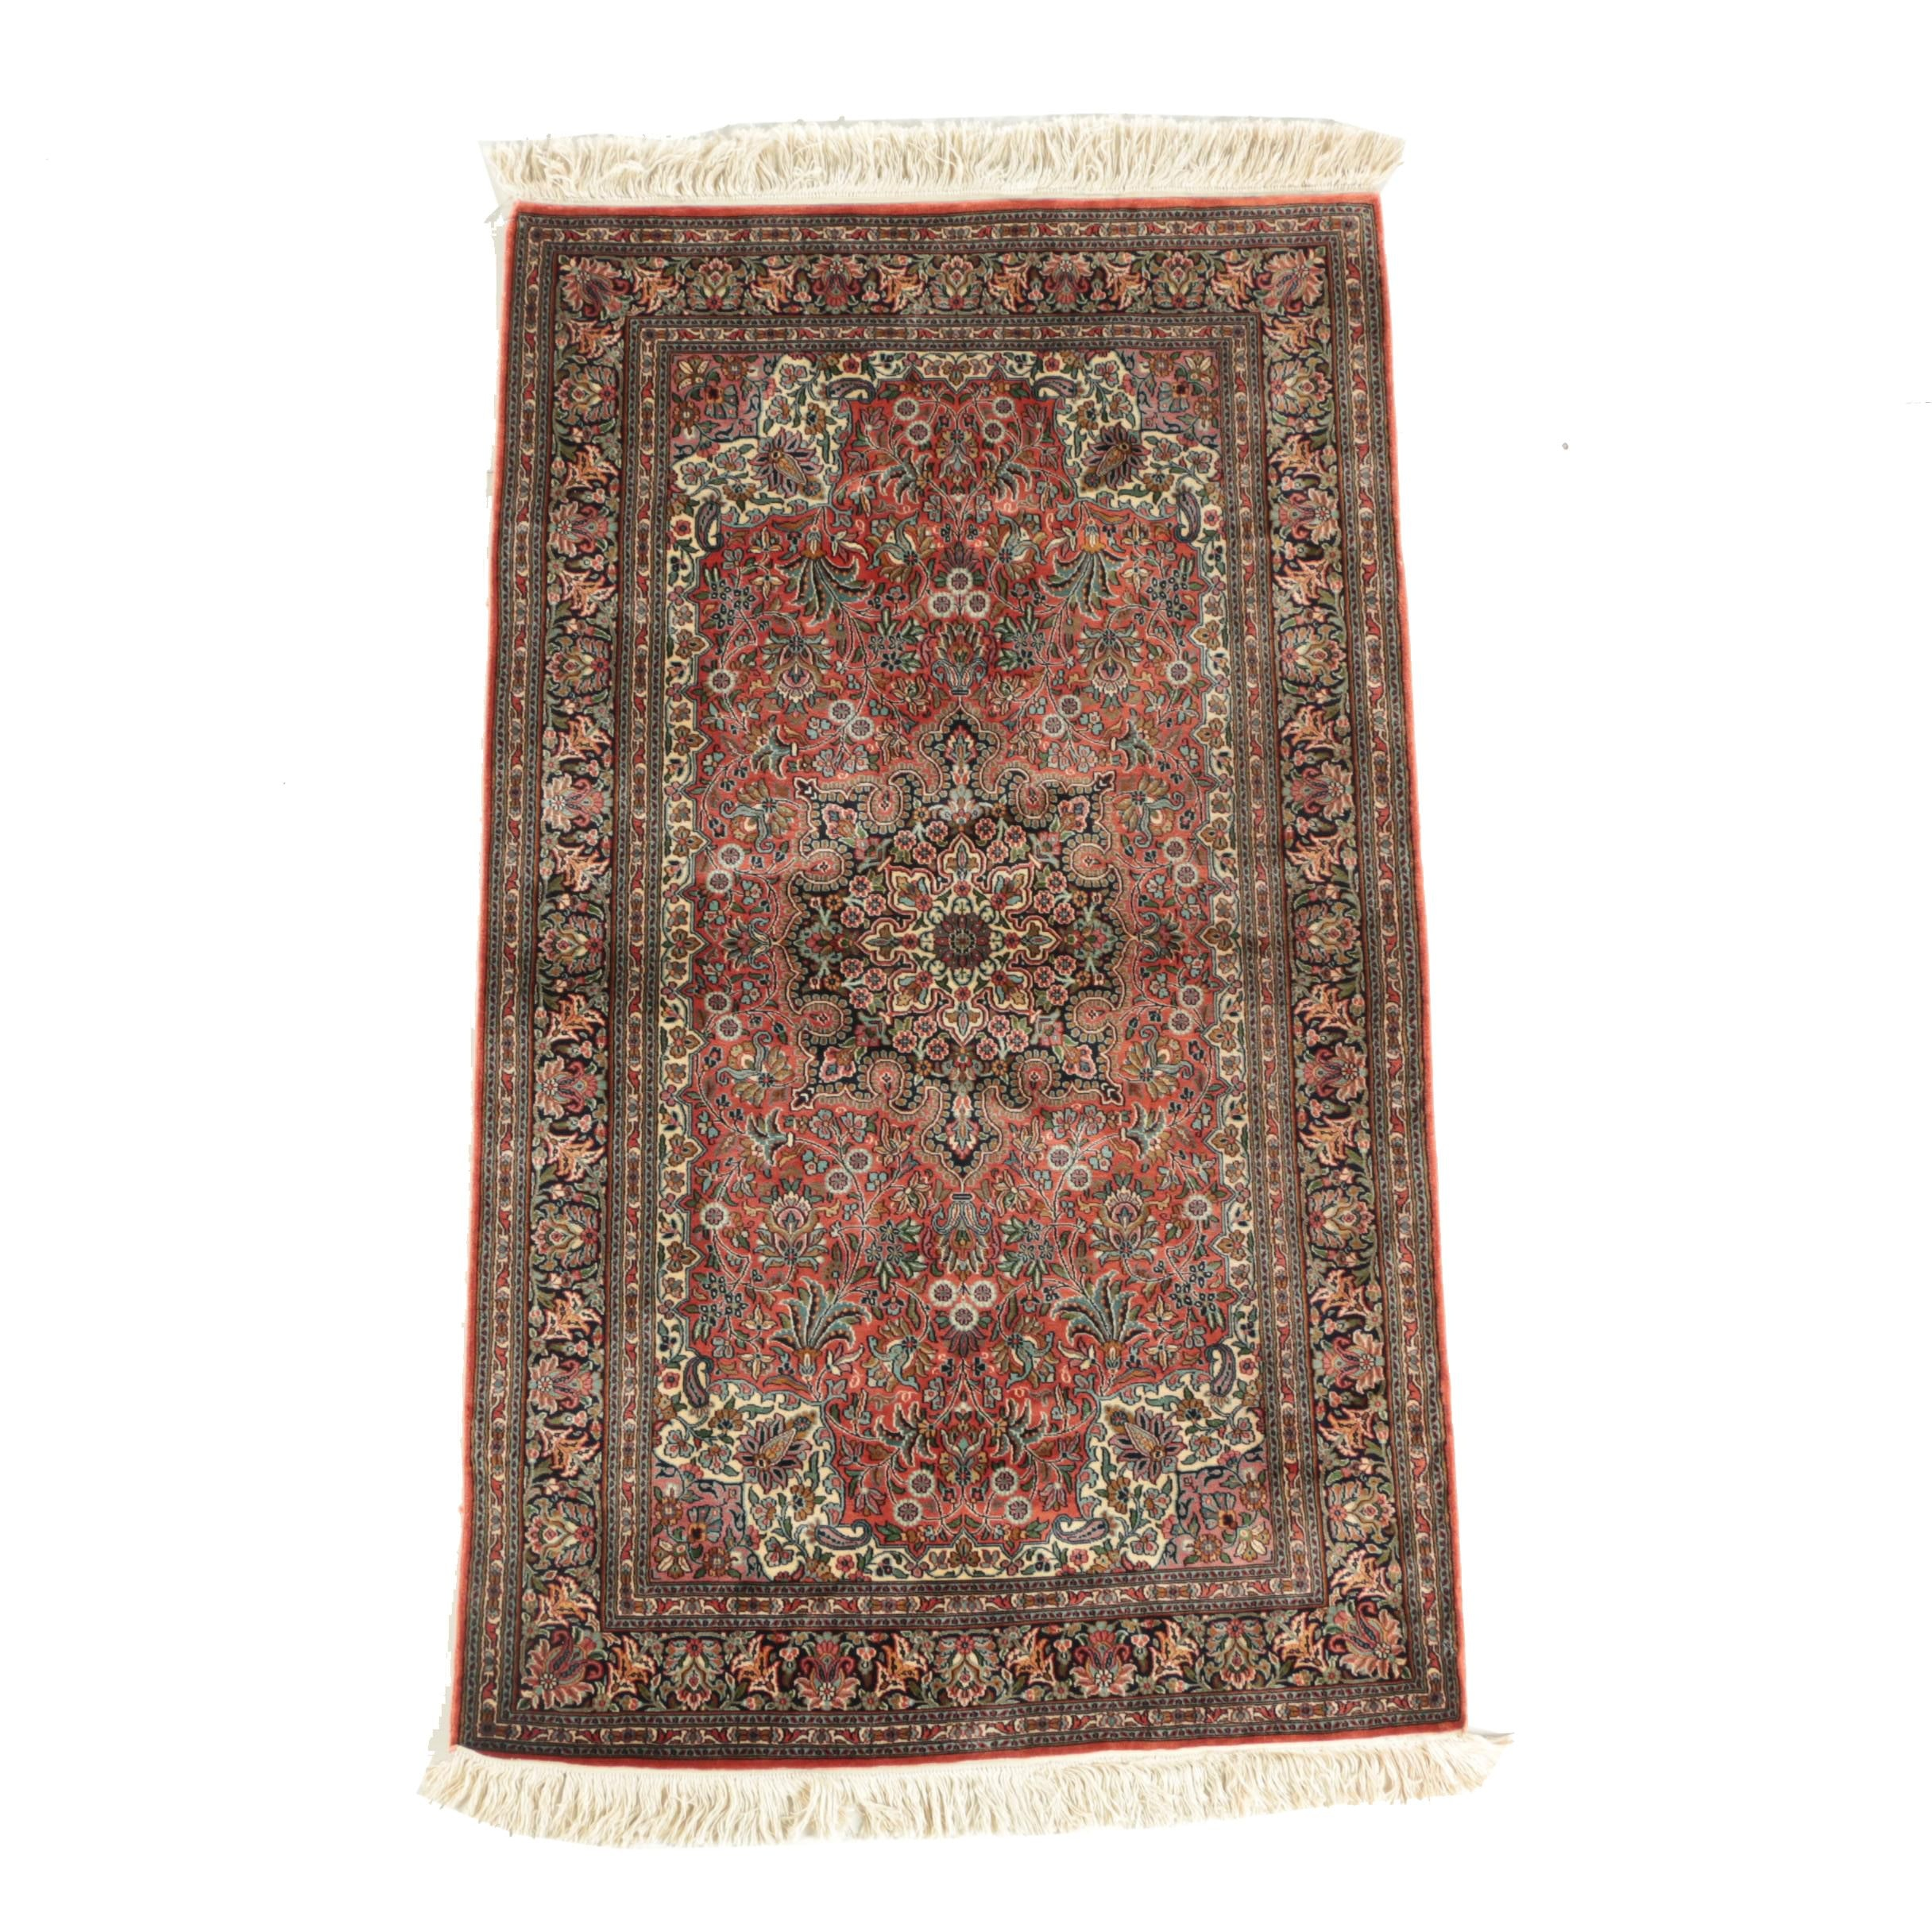 Finely Hand-Knotted Sino-Persian Silk Accent Rug